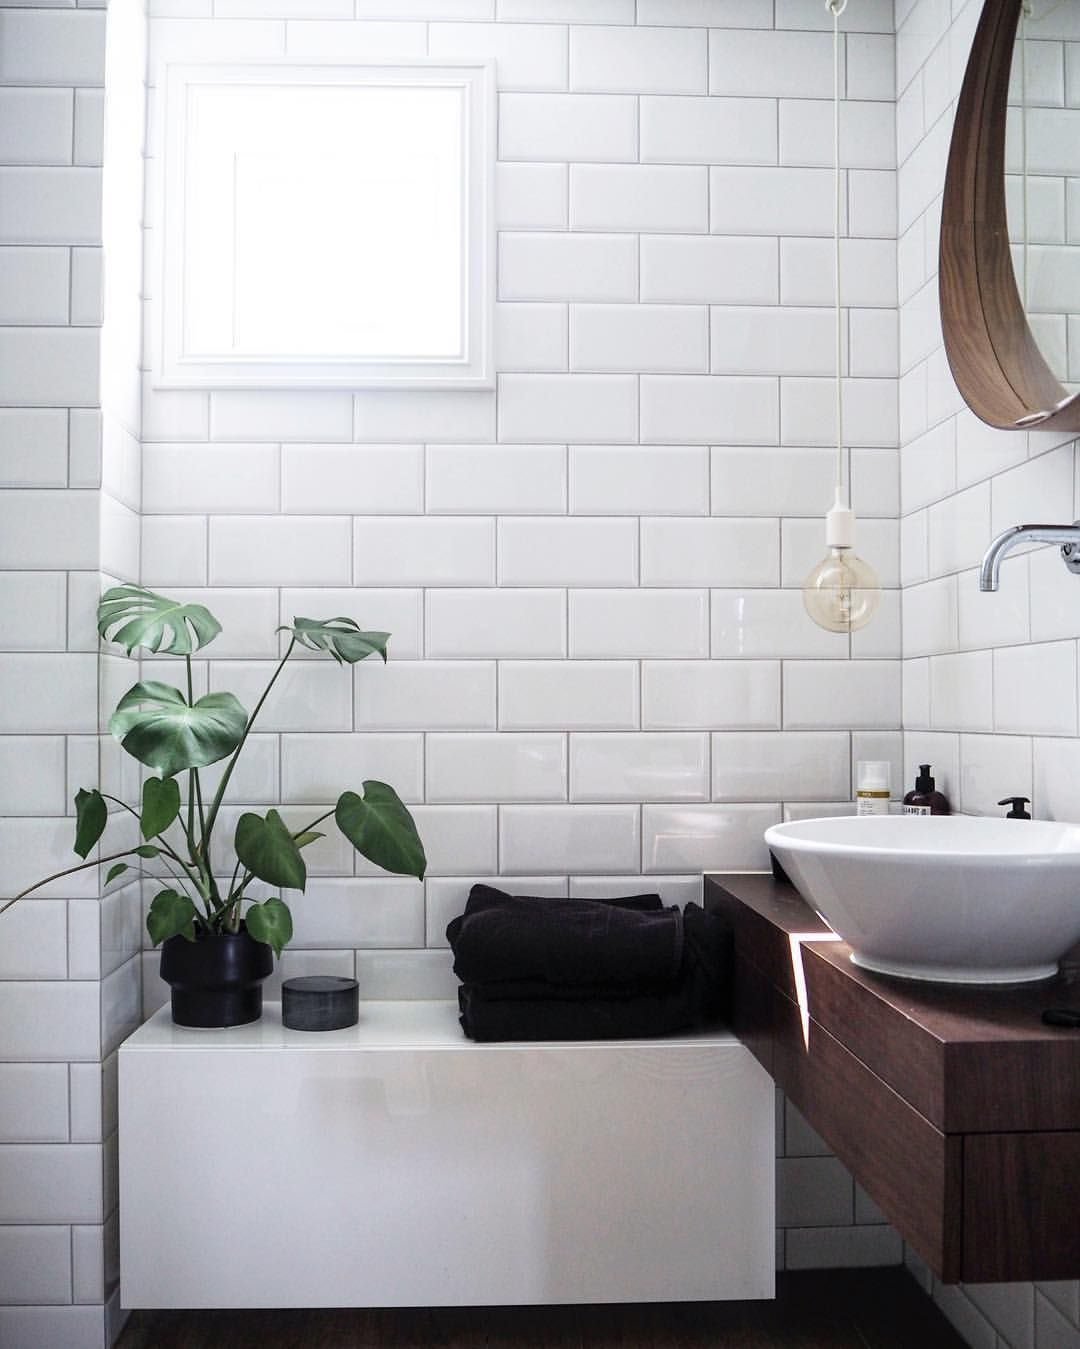 Bathroom inspiration. Minimalism, subway tiles, timeless style ...